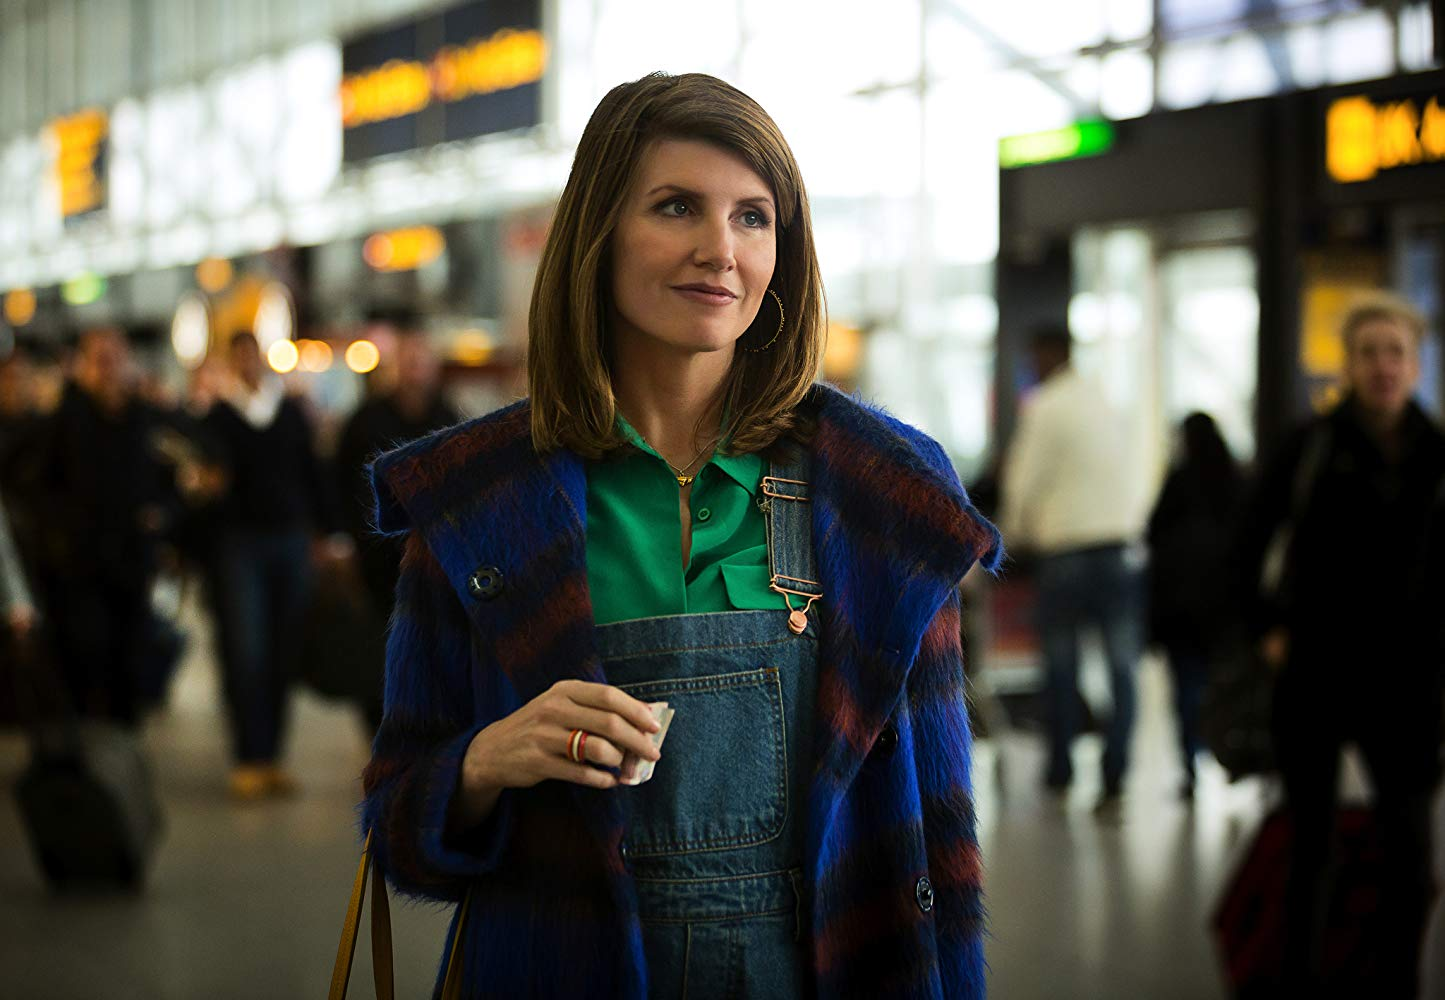 Sharon Horgan to Make Her Feature Directorial Debut, Has Yet Another Show in the Works